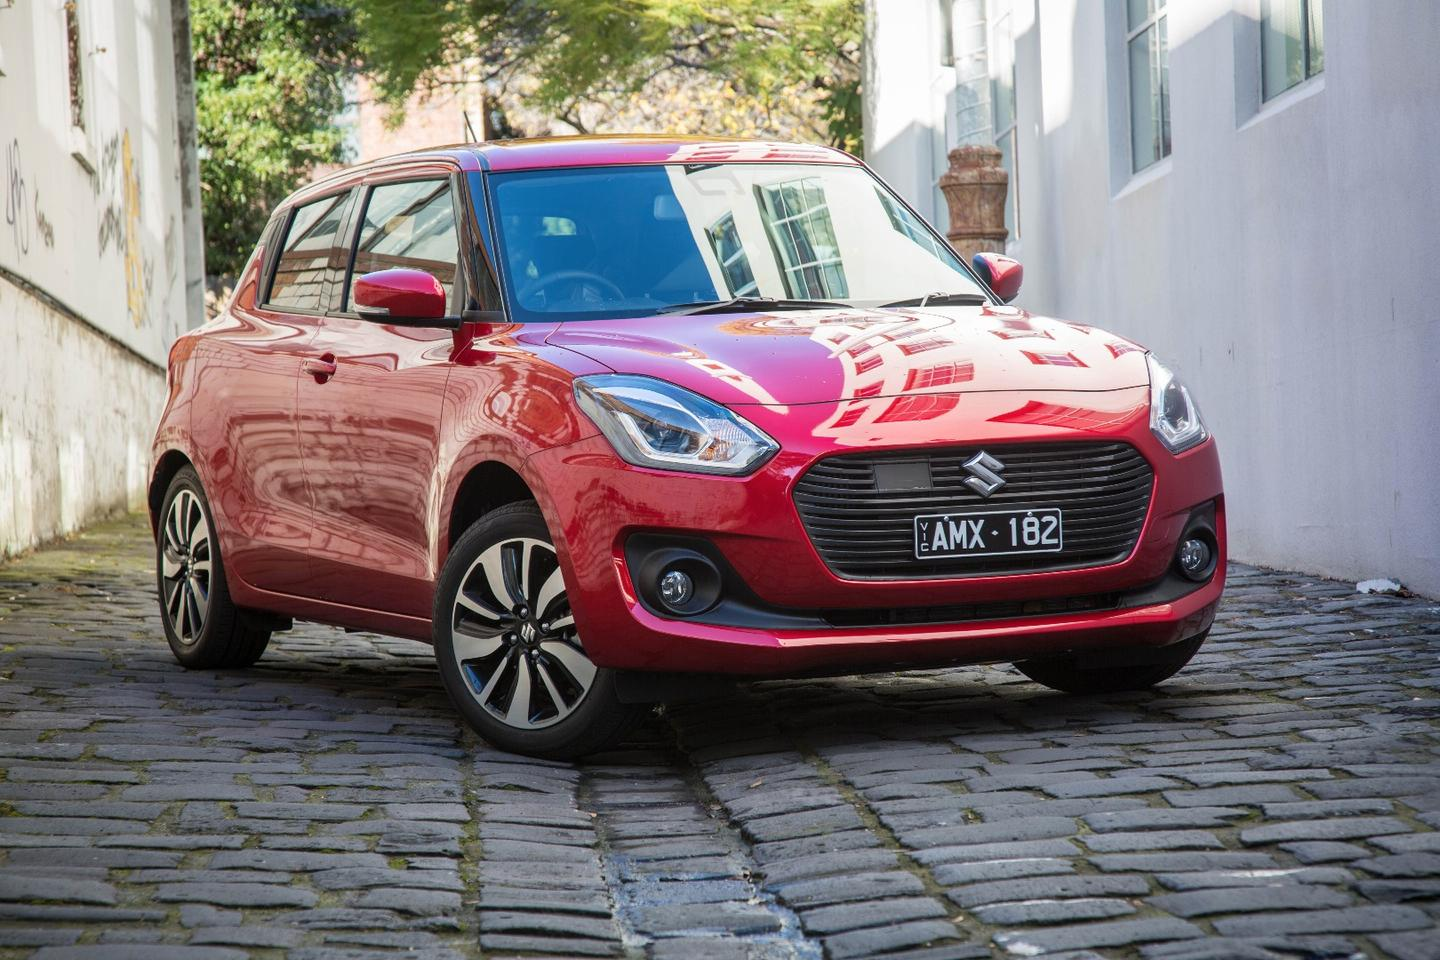 The new Swift GLX Turbo is at home in the city